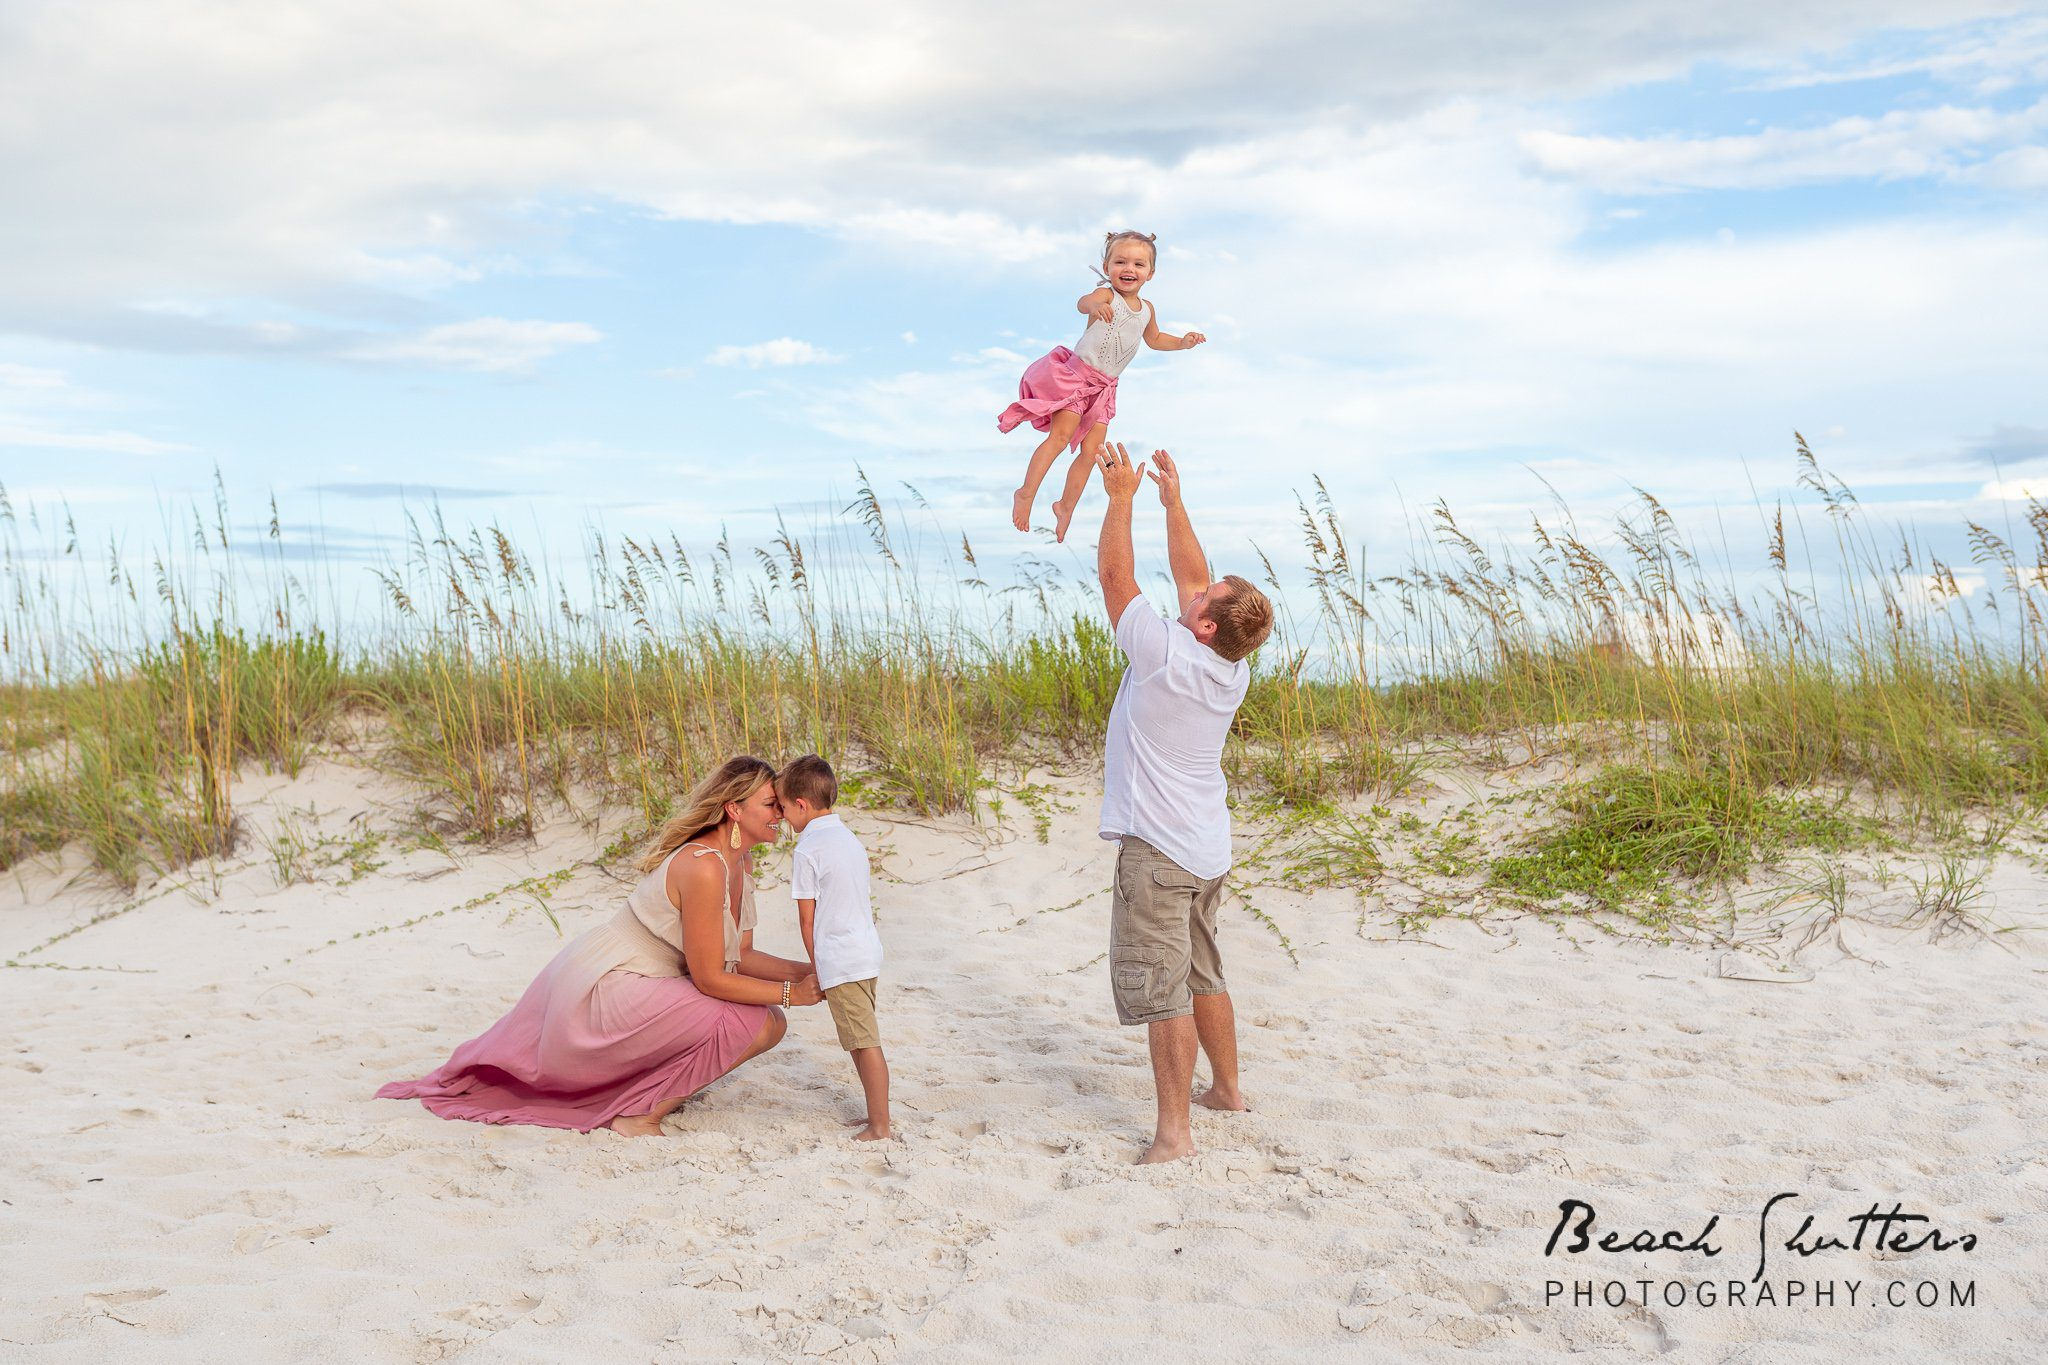 photo locations in Gulf Shores